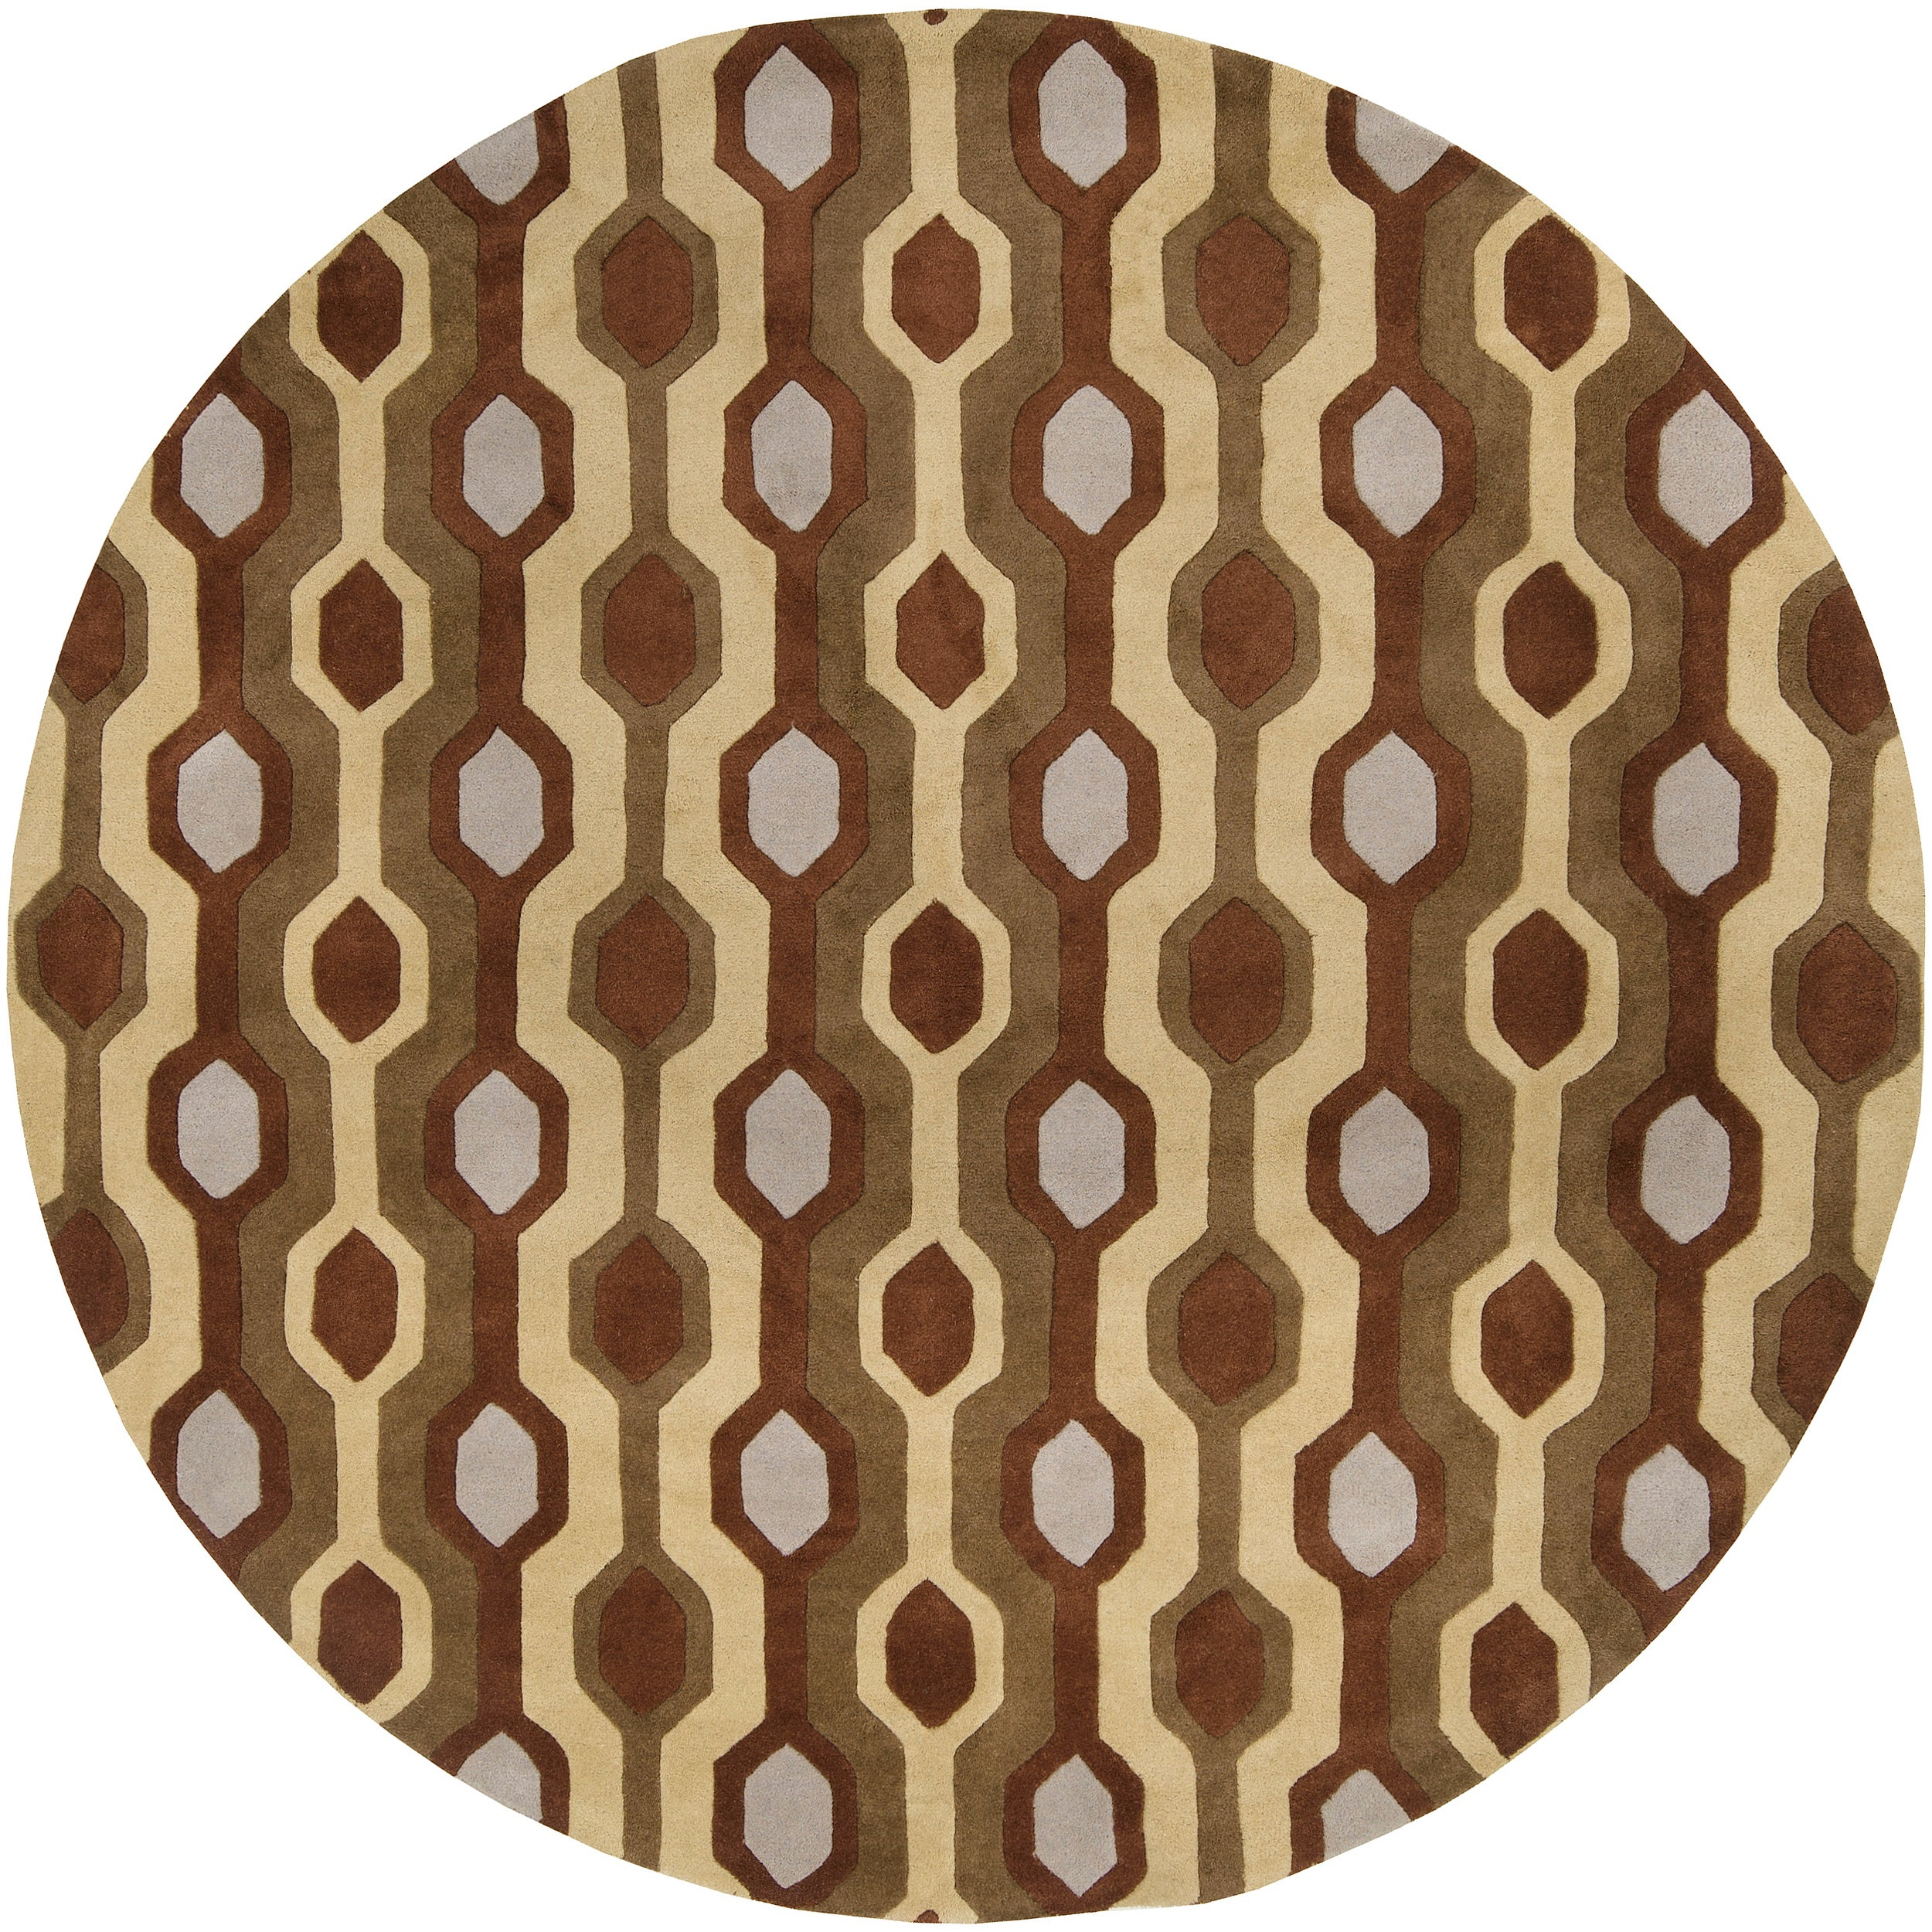 Hand-tufted Brown Contemporary Breaux Wool Geometric Rug (6' Round)